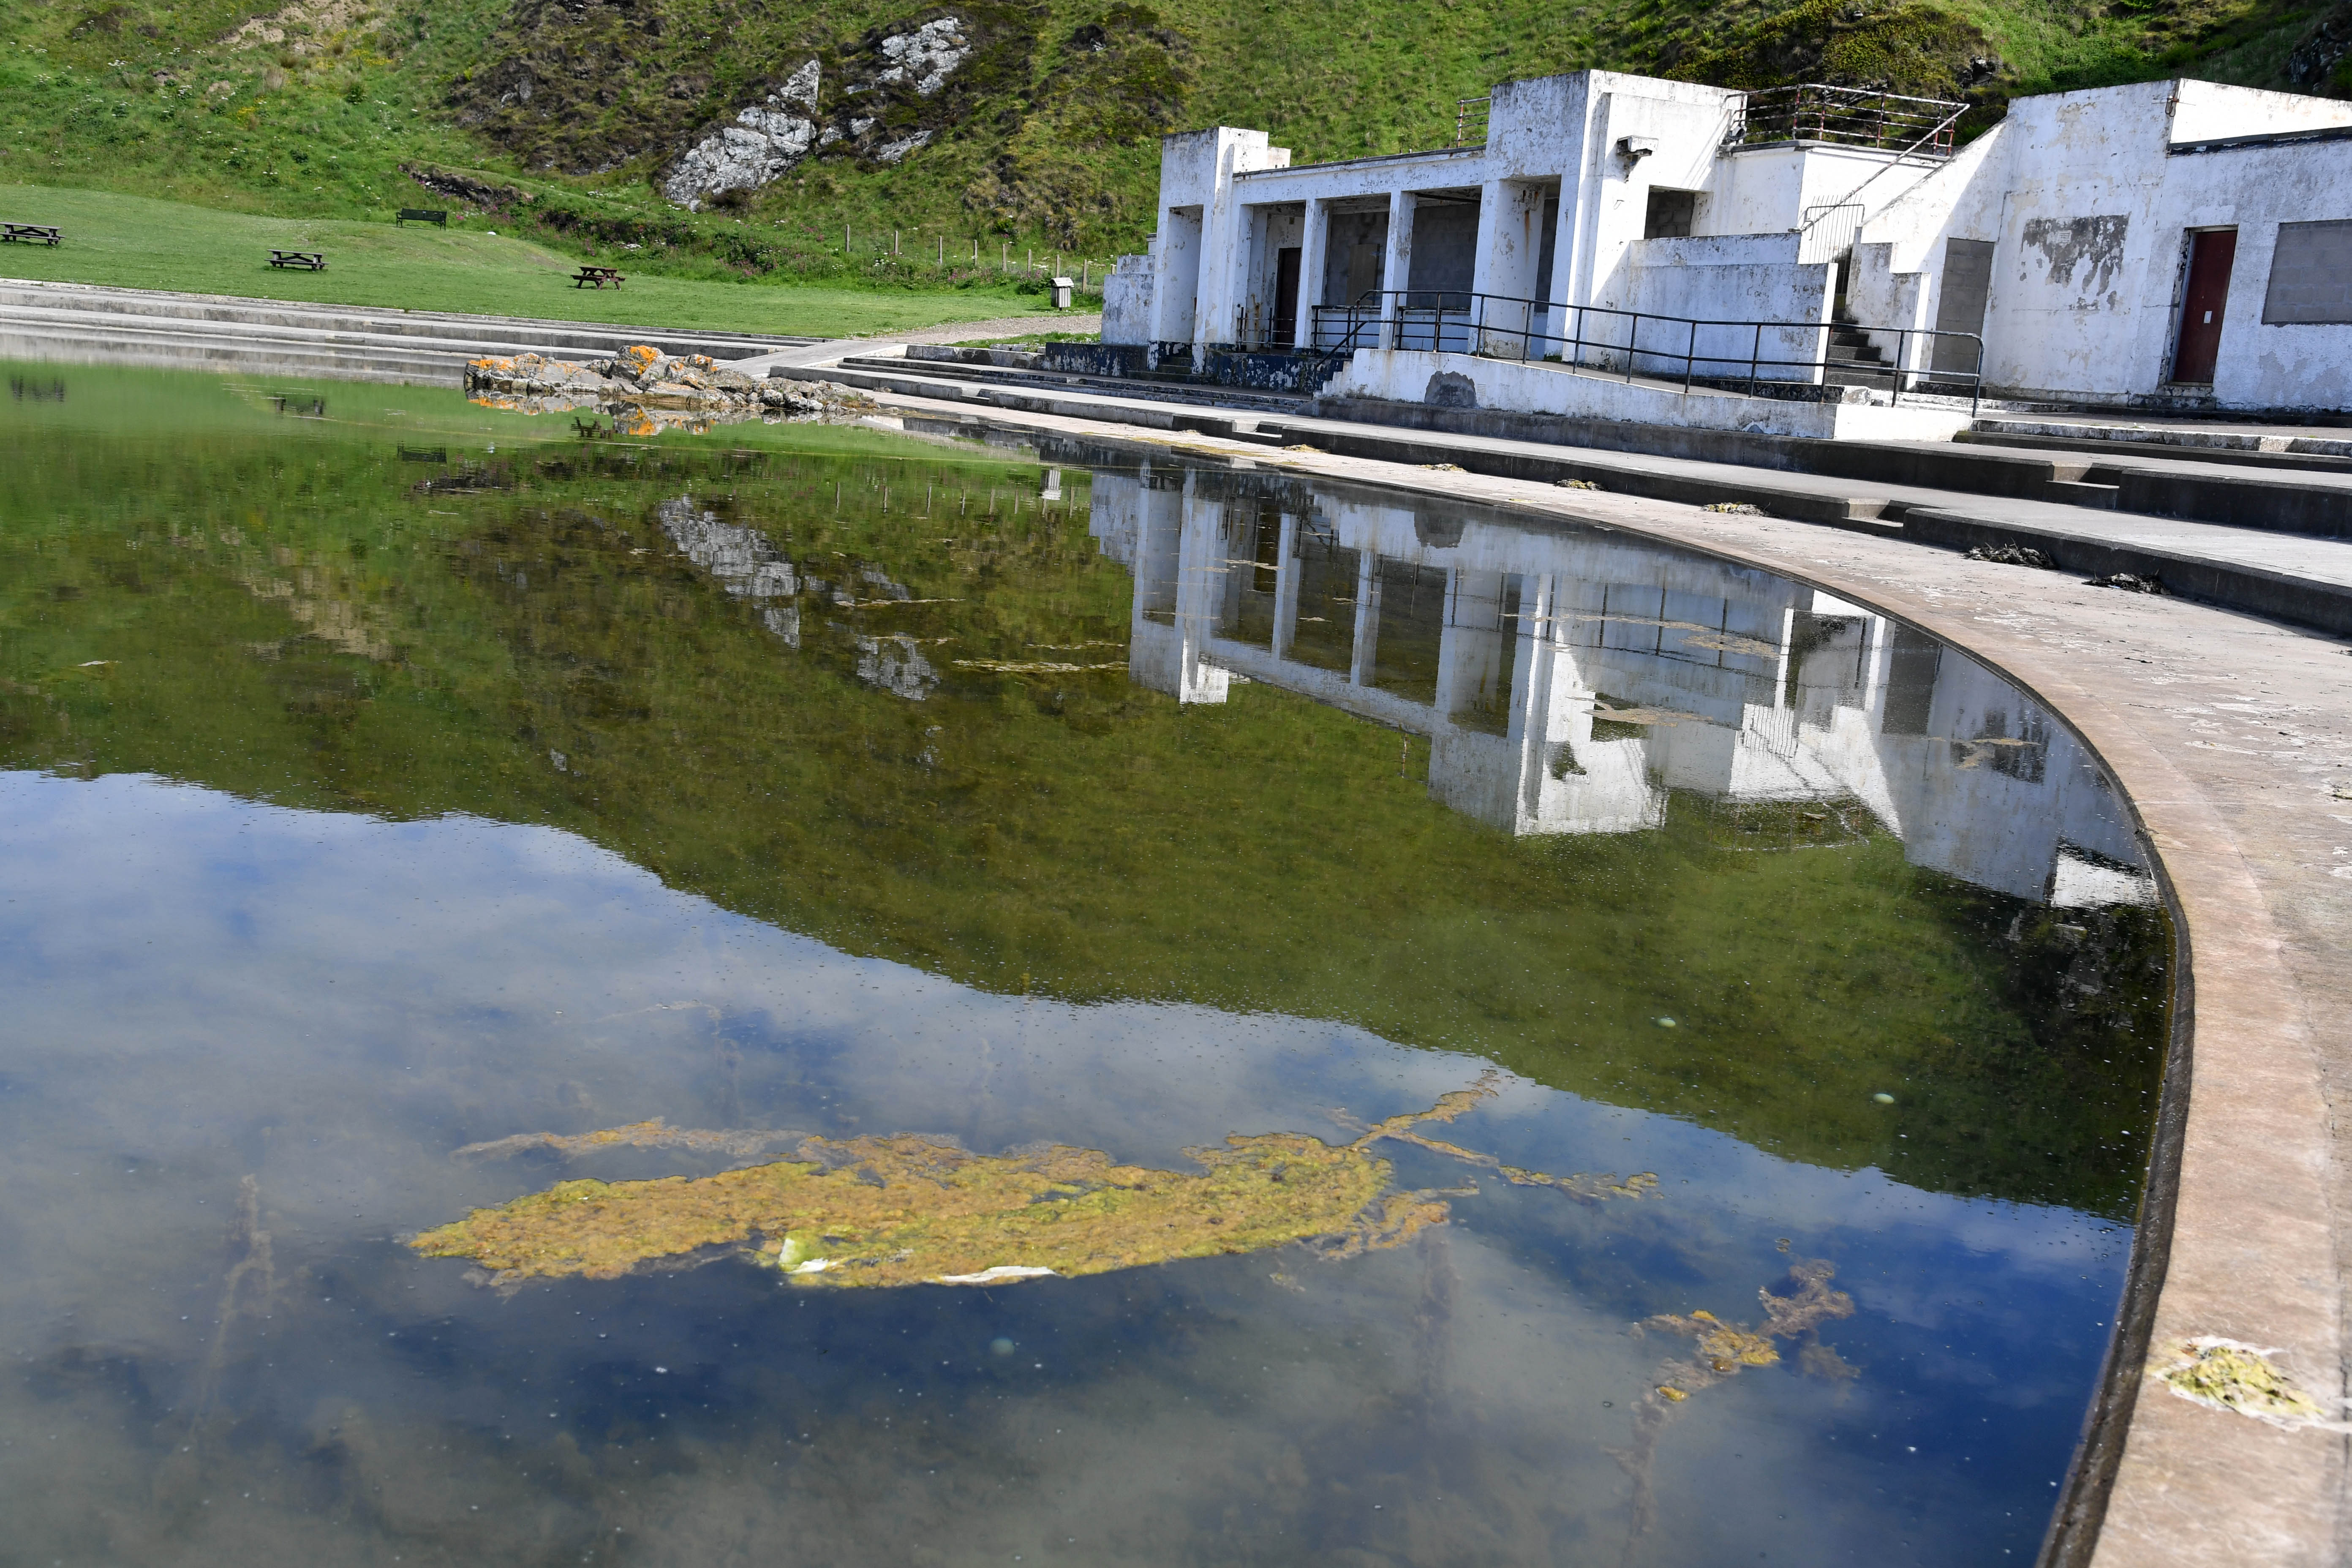 Underwater growth is clogging up Tarlair swimming pool